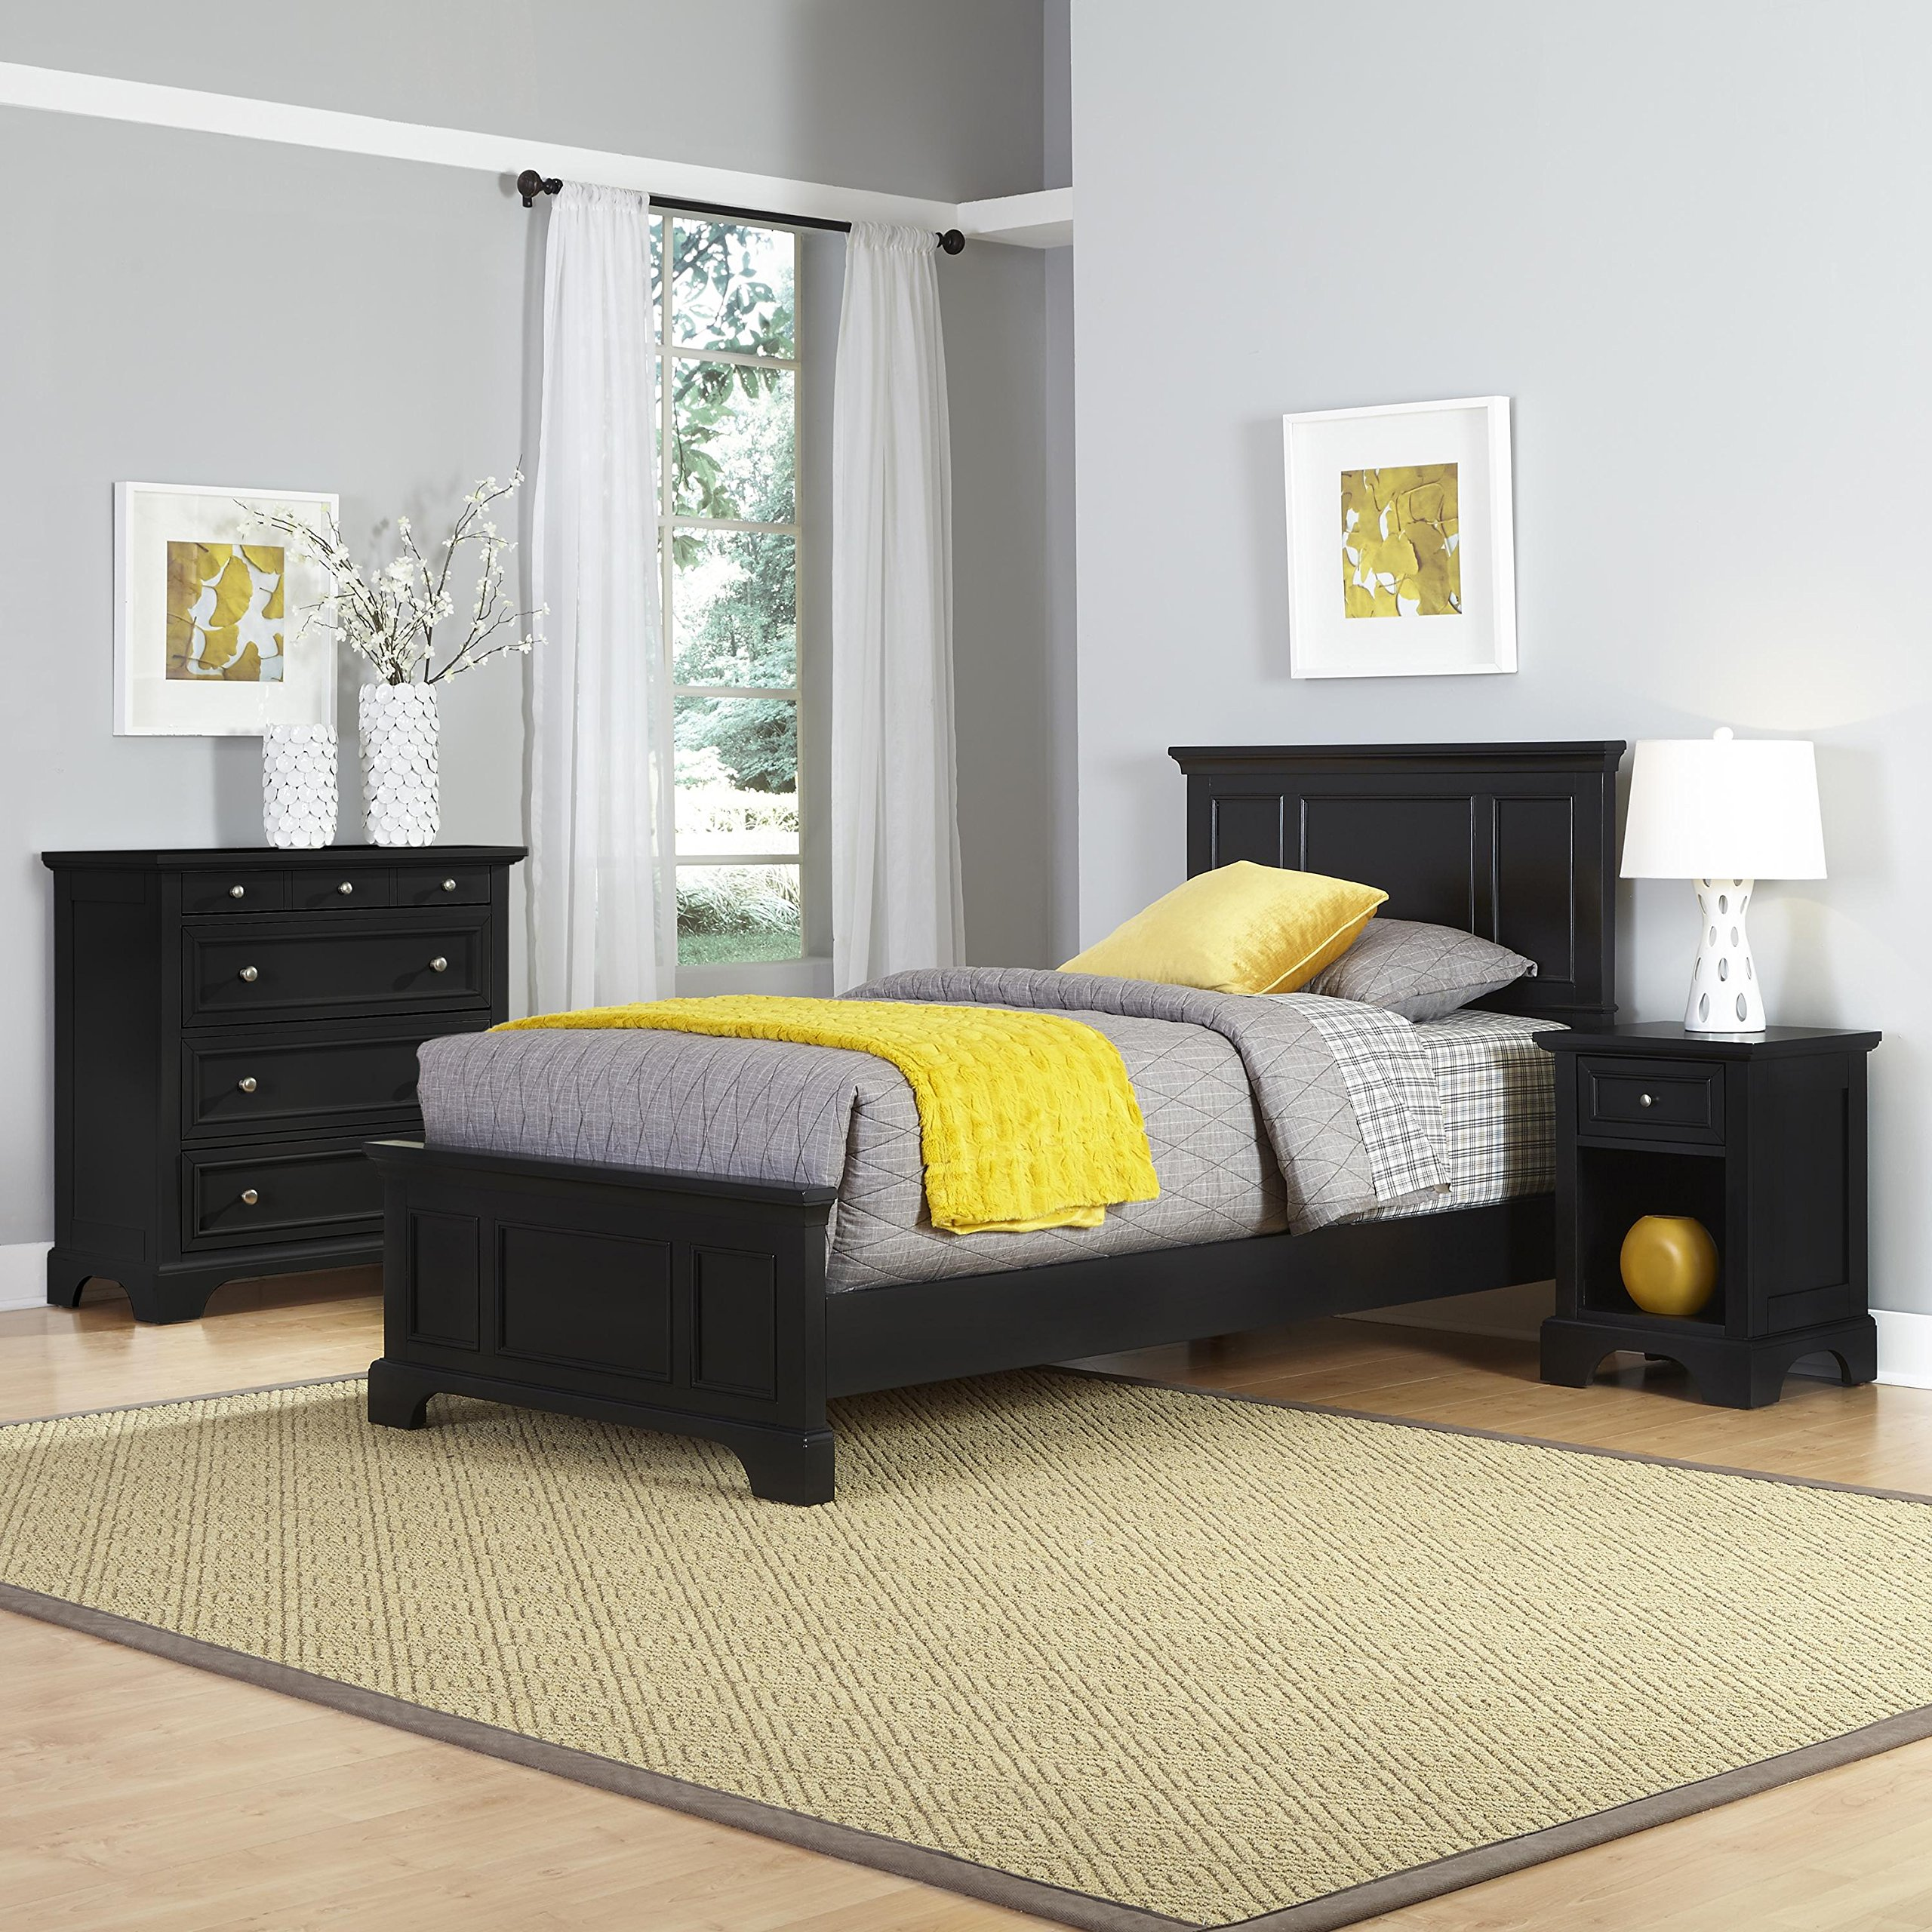 Bedford Black Twin Bed, Night Stand and Chest by Home Styles